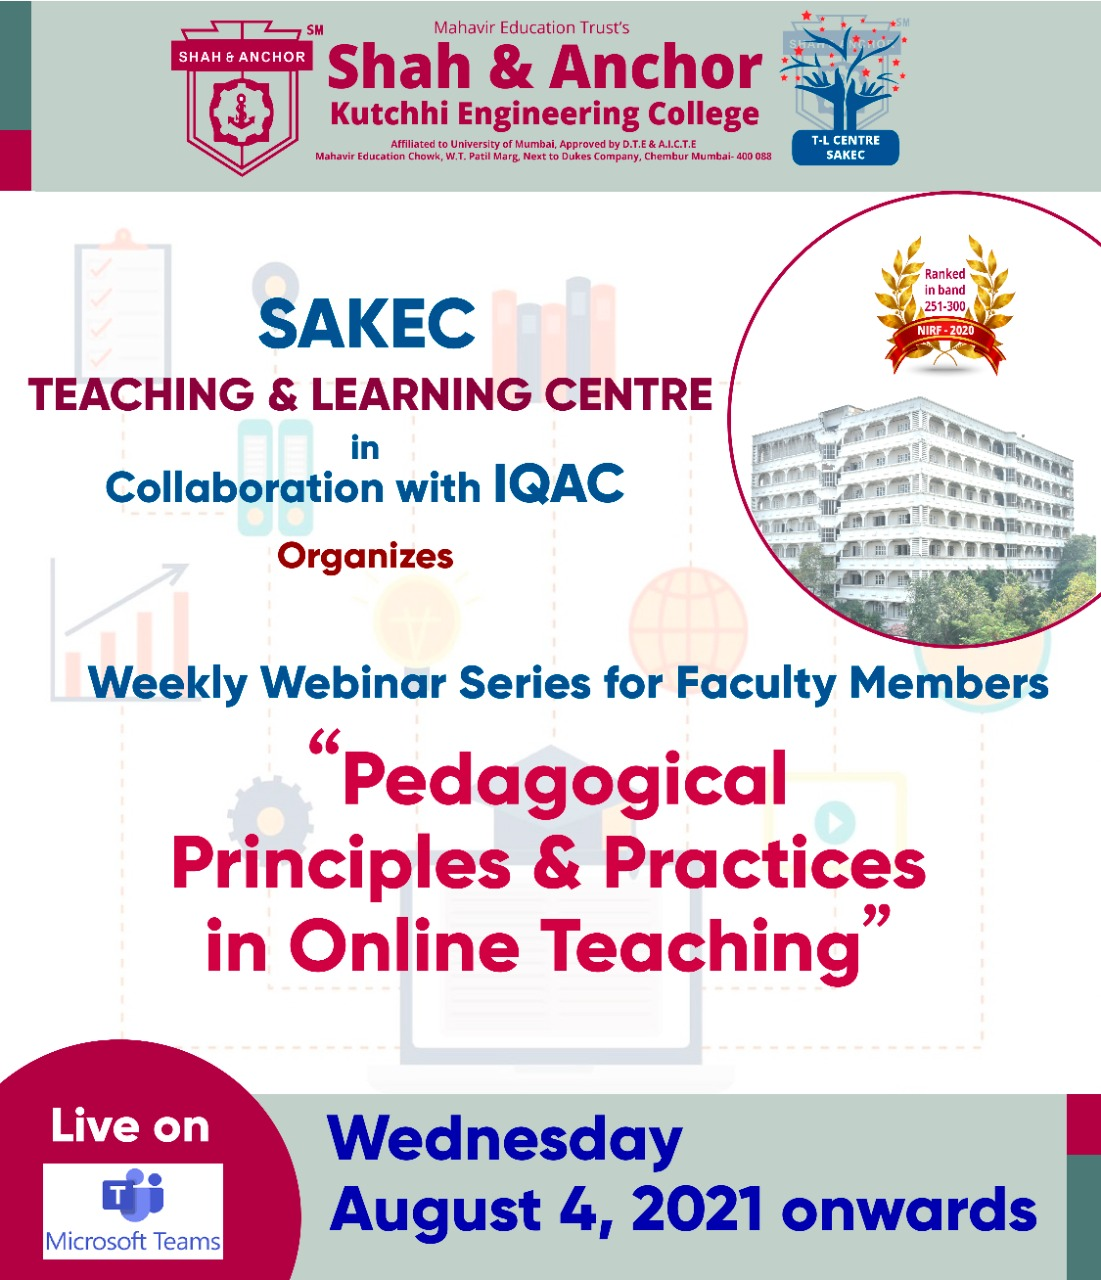 Pedagogical Principles & Practices in Online Teaching